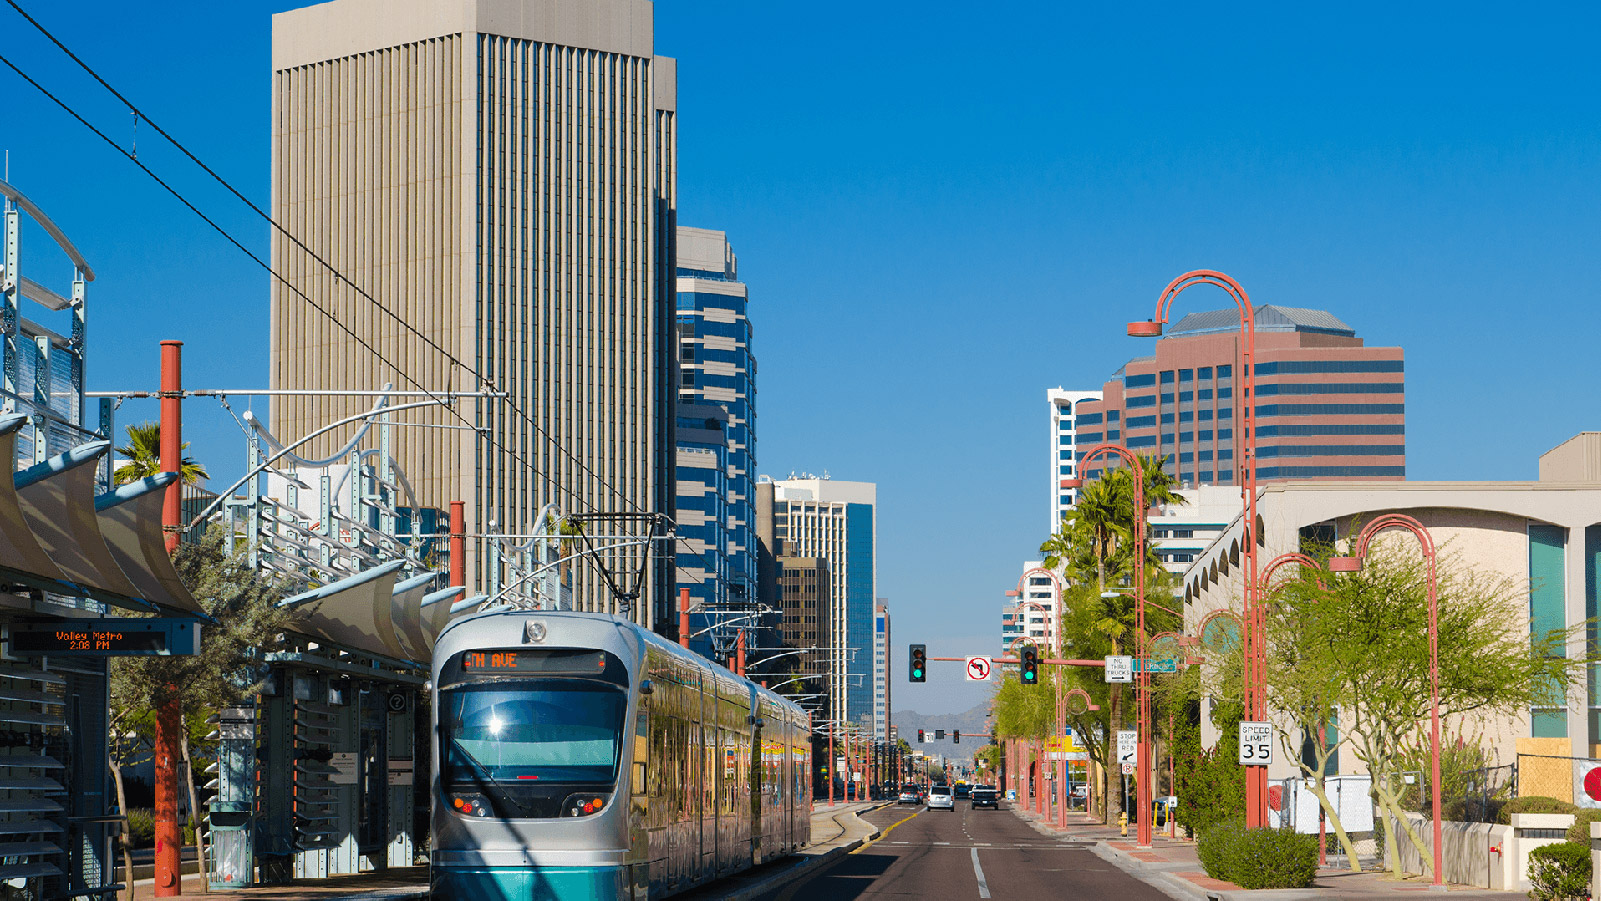 Downtown Phoenix light rail station.